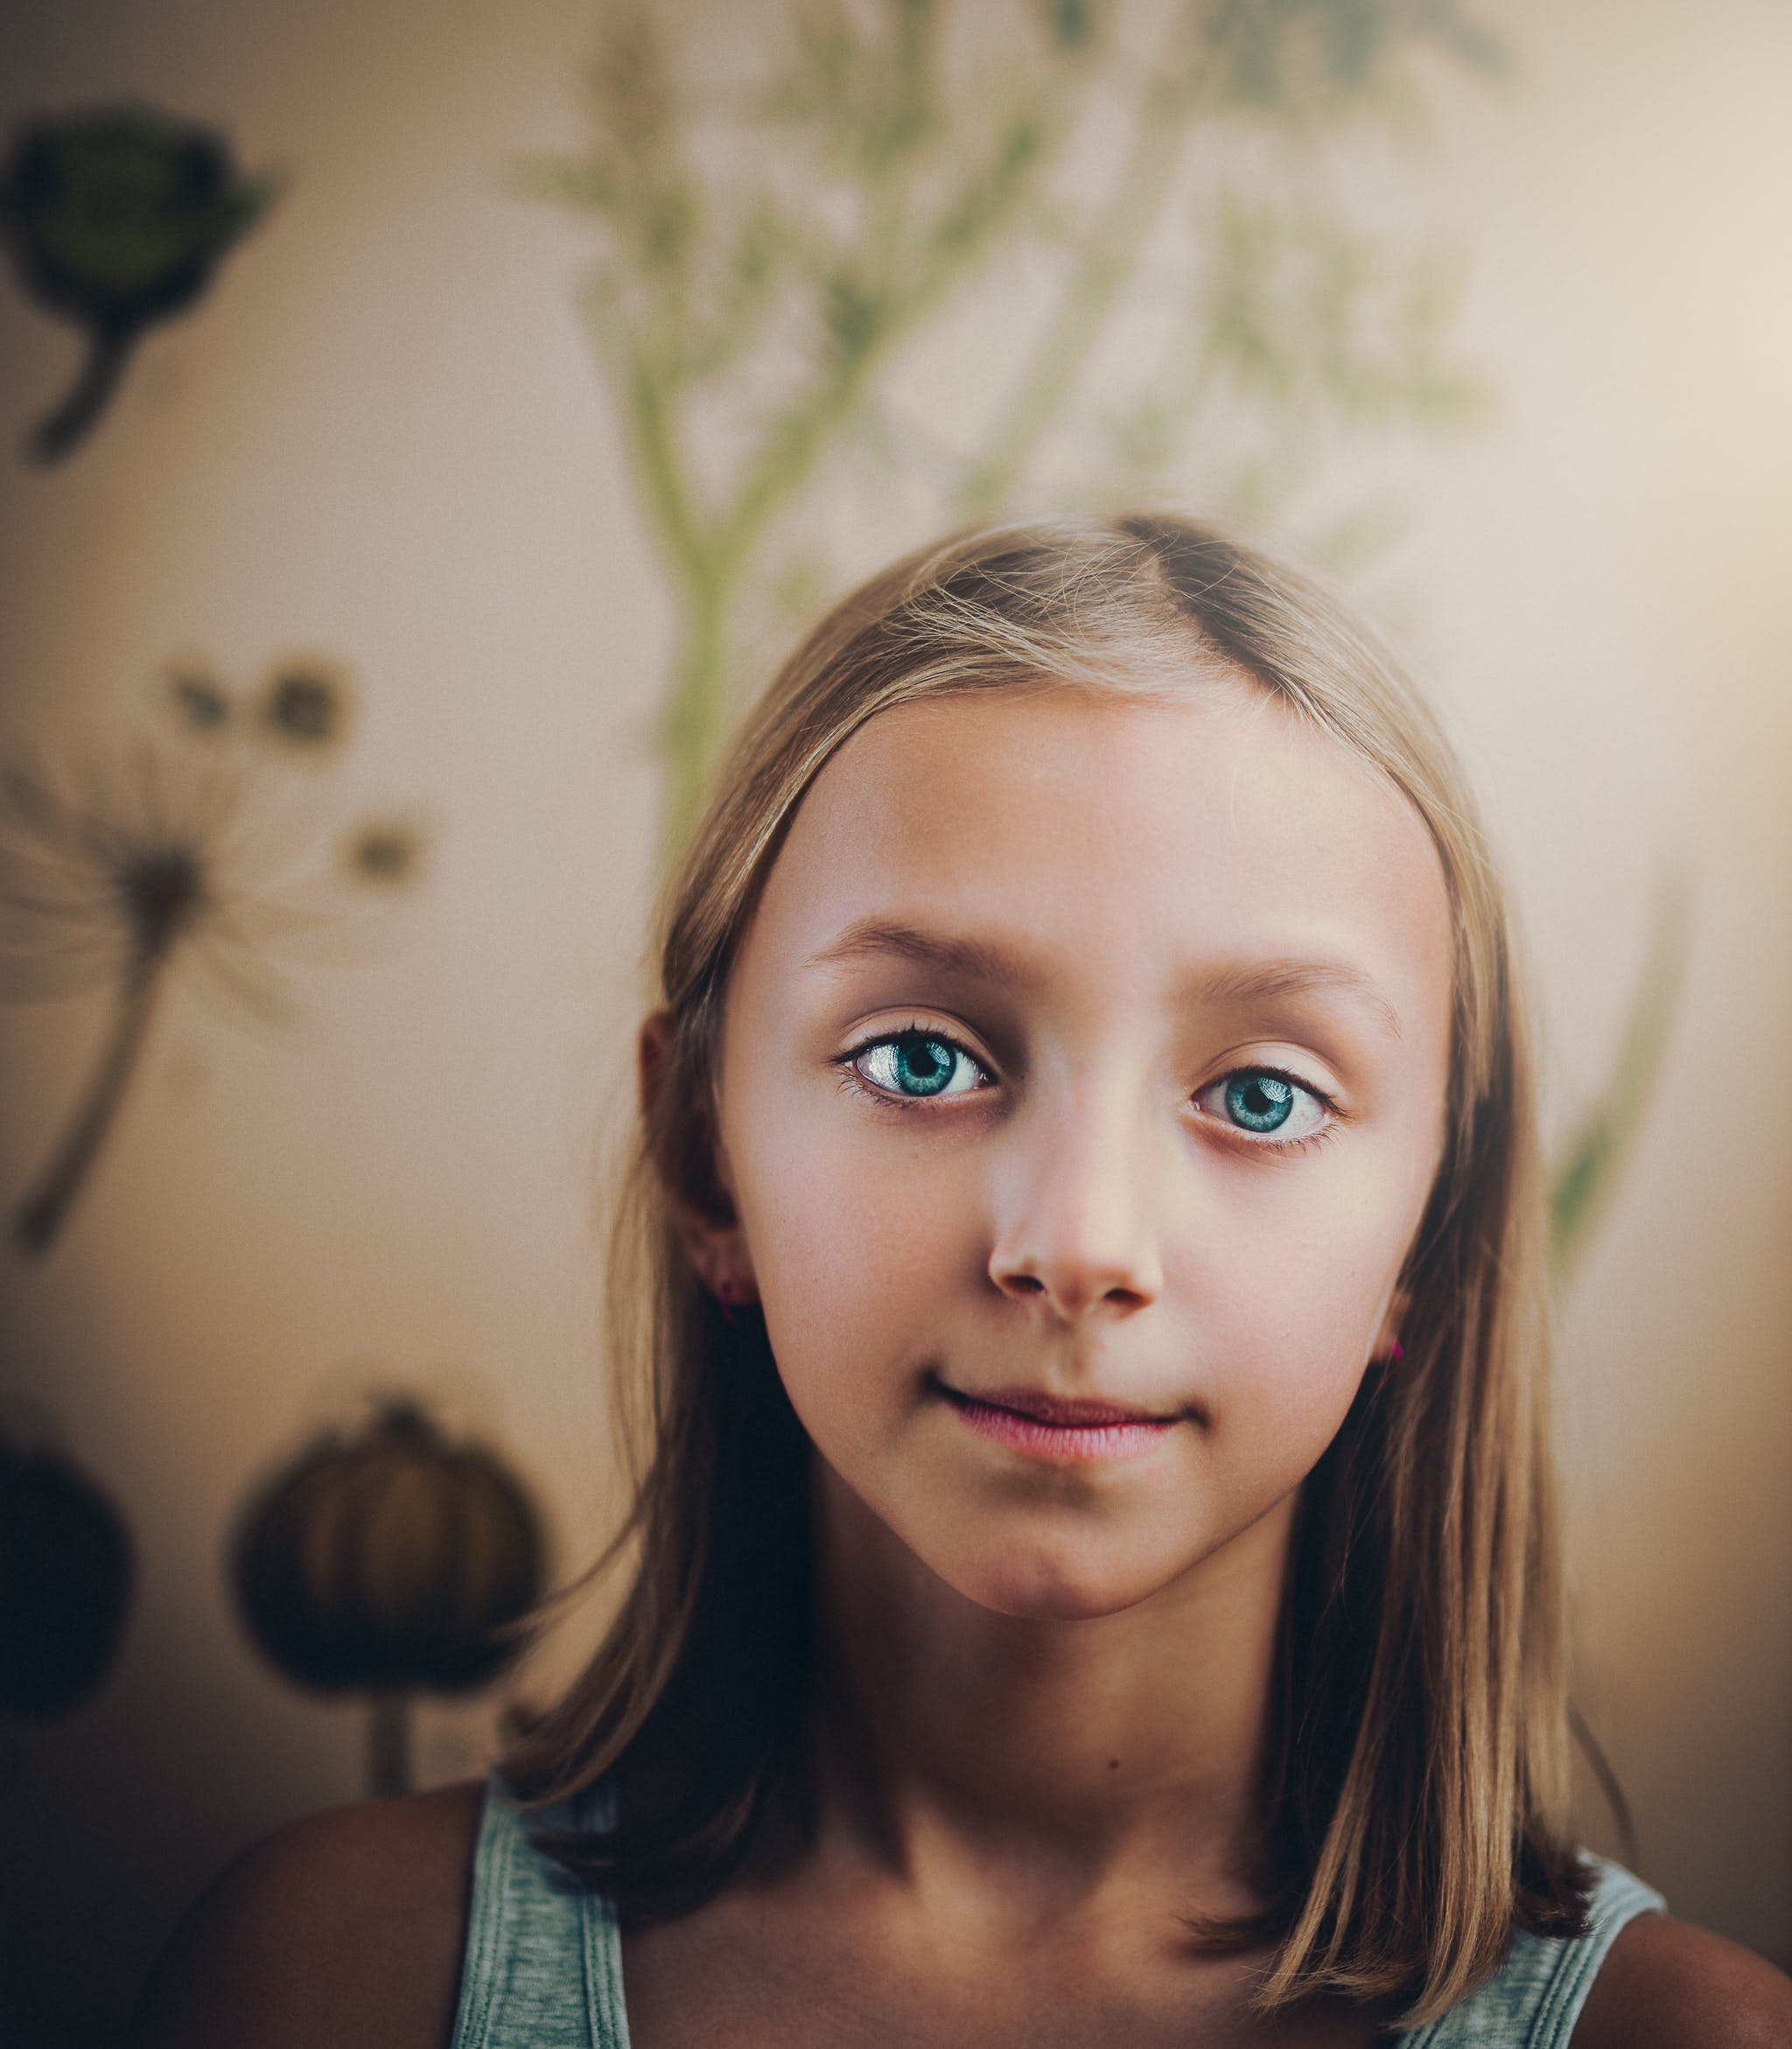 Smiling Girl Standing in White Painted Wall Room